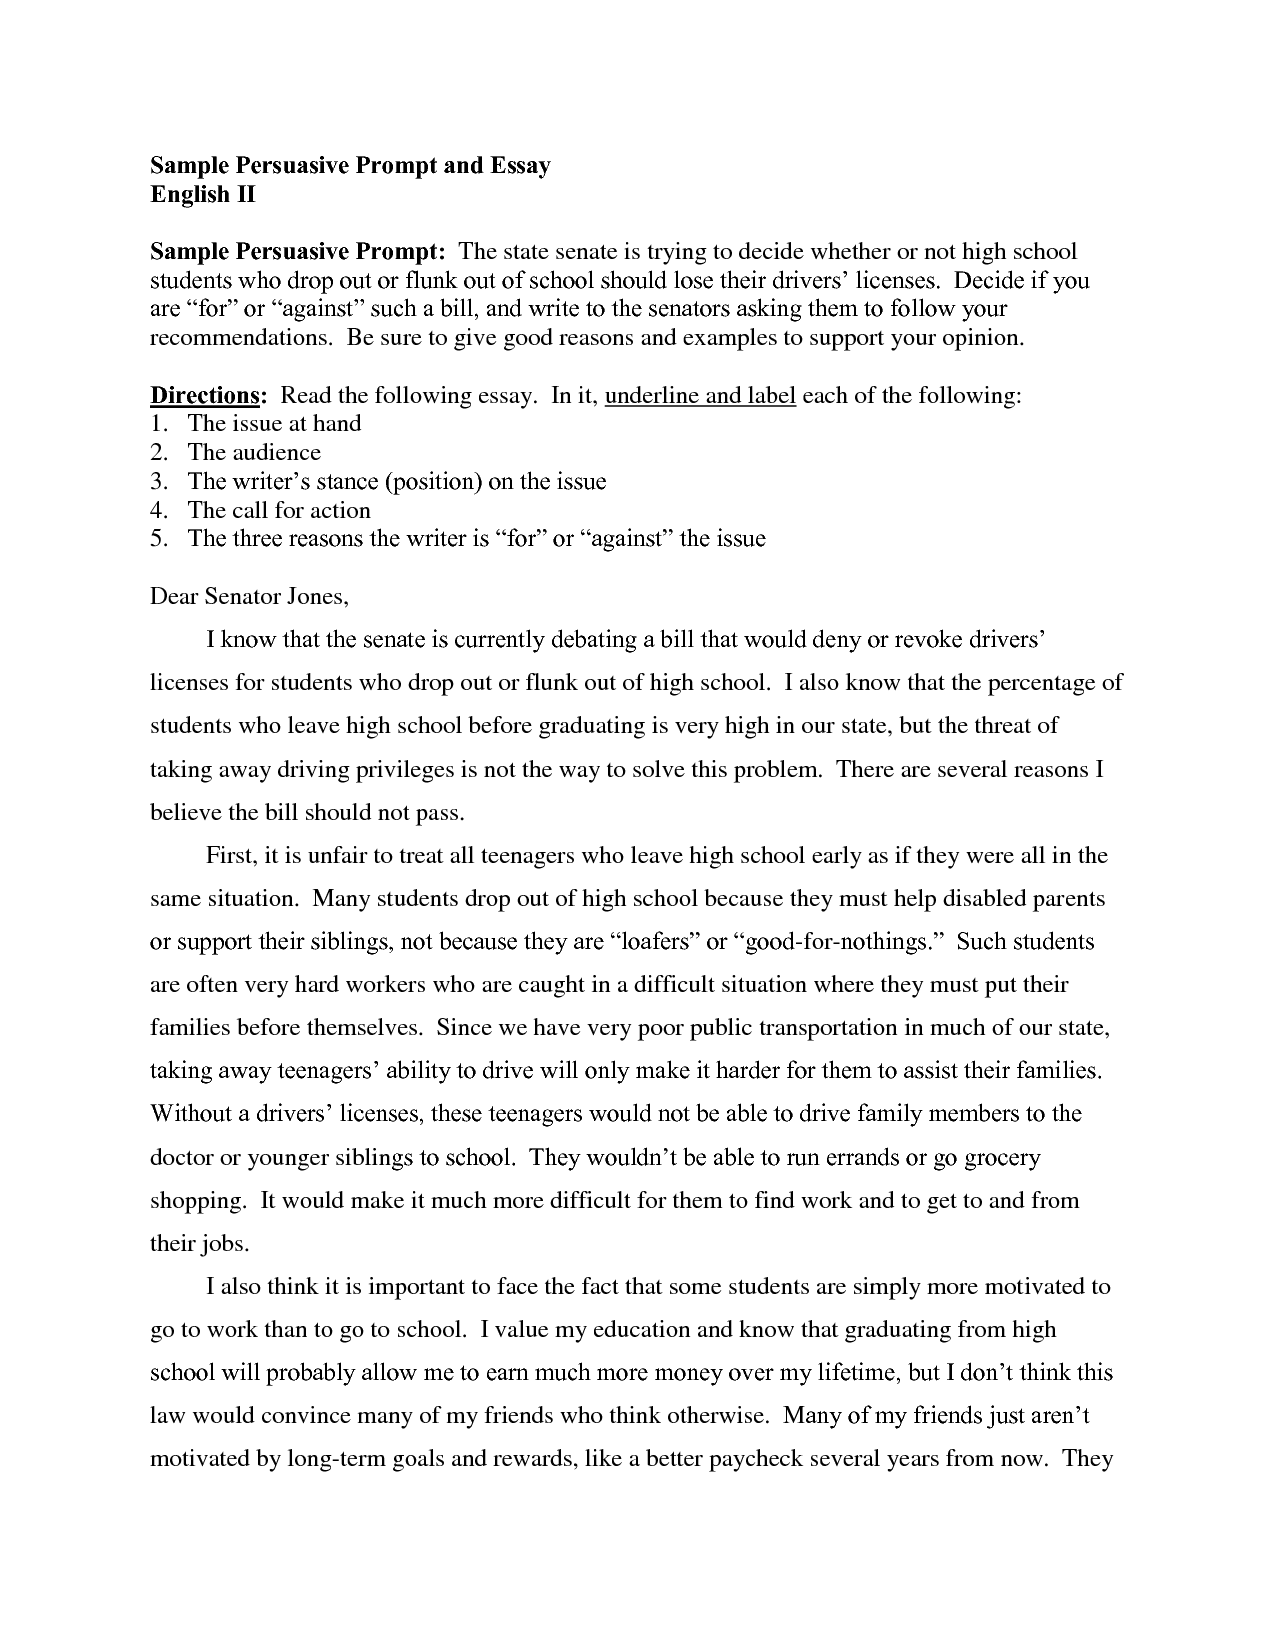 013 Research Paper Easy Topic Persuasive Essay Topics For High School Sample Ideas Highschool Students Good Prompt Funny Fun List Of Seniors Writing English Sensational Psychology World History Full